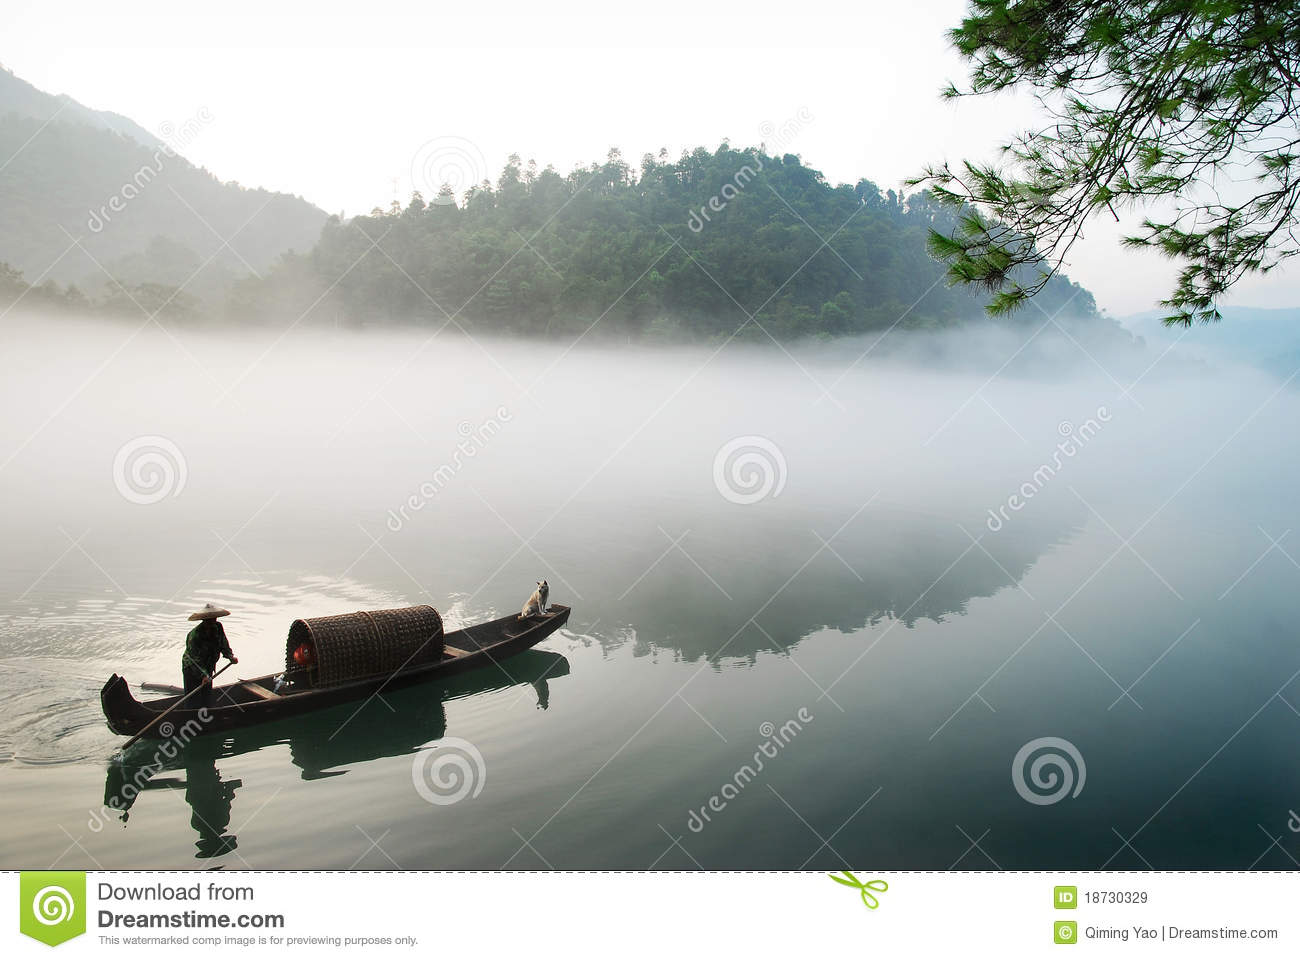 Boating in the fog